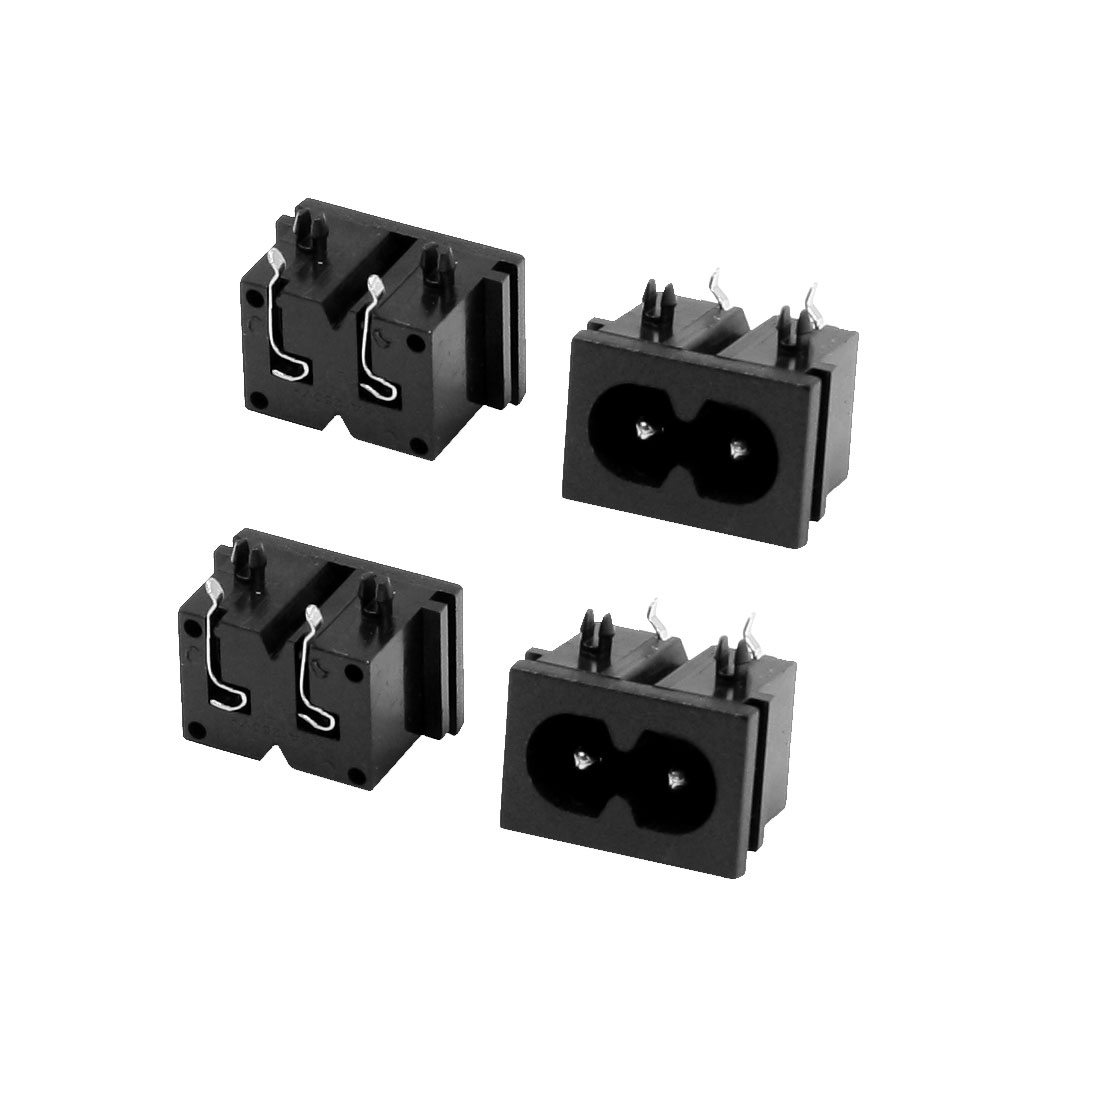 4 Pcs Electrical Black IEC320 Inlet C8 Power Adapter 250V 2.5A